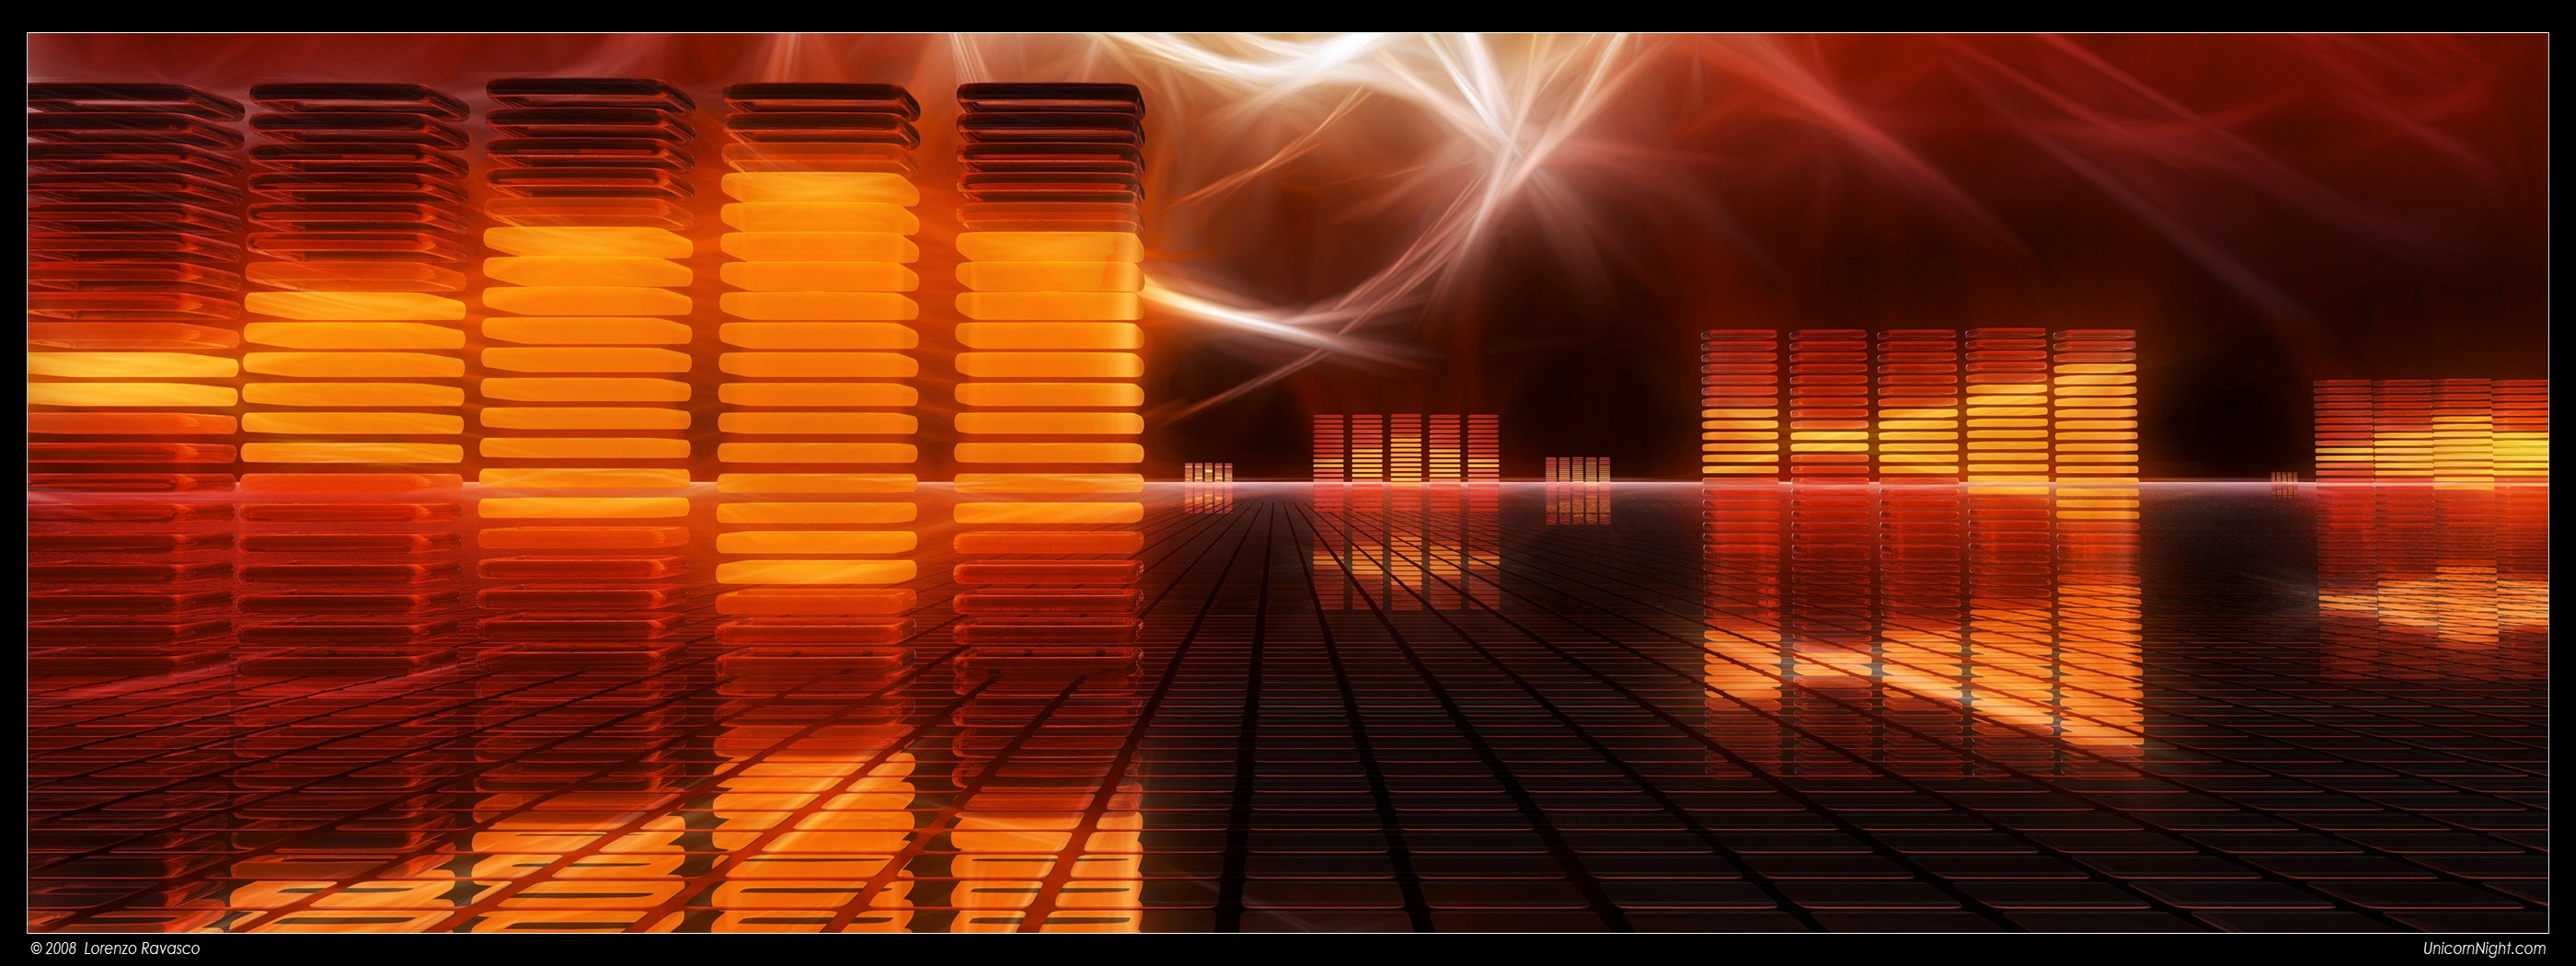 sztuka - tapety3d - dual_screen_3D_Wallpapers_Decibel_3360x1050